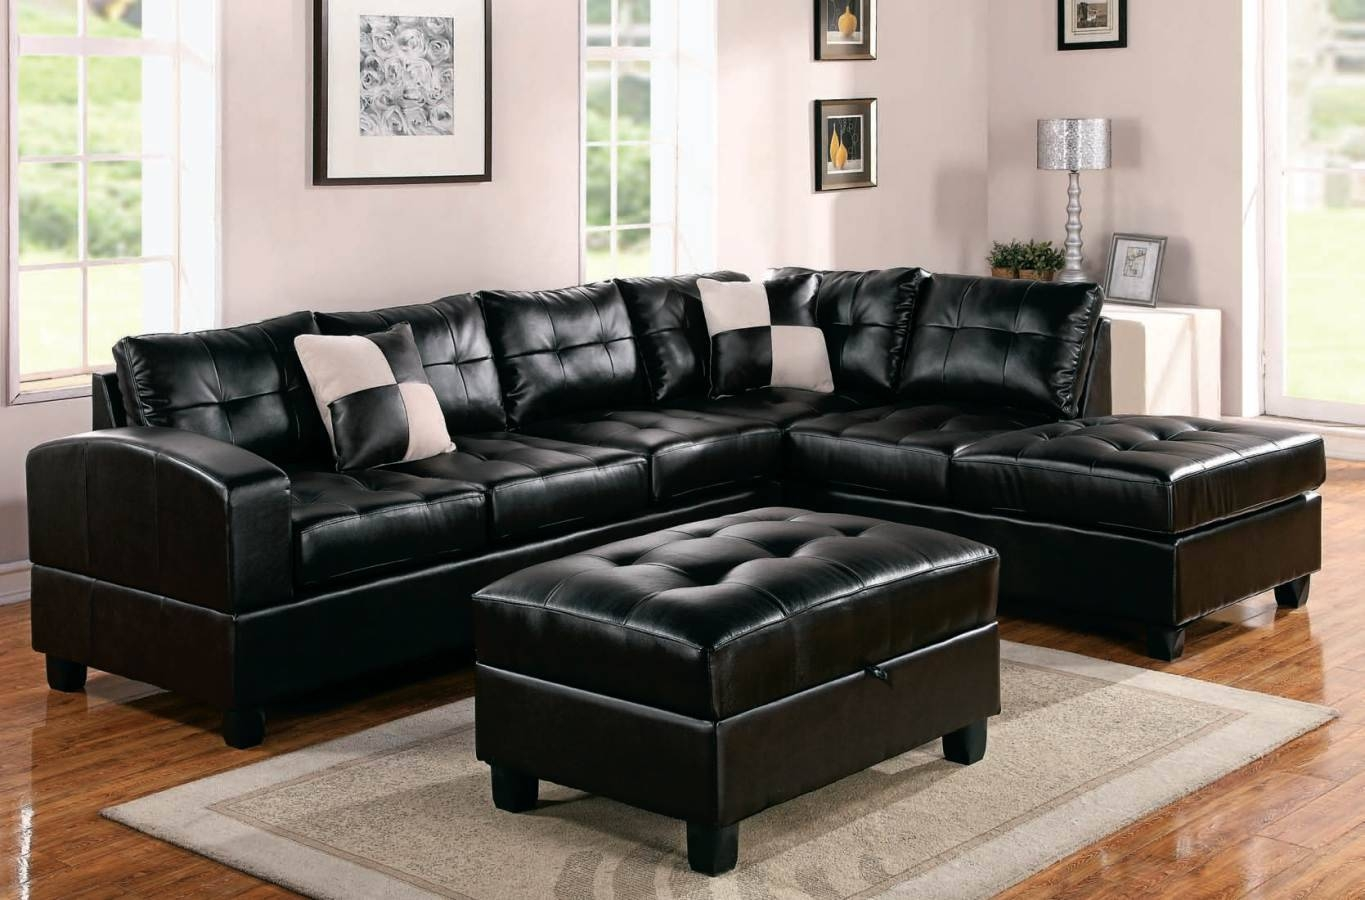 Living Room Ideas With Black Leather Sectional Part - 42: Winsome Living Room Ideas With Black Sectionals And Grey Sectional  Regarding Black Leather Sectional Sleeper Sofas